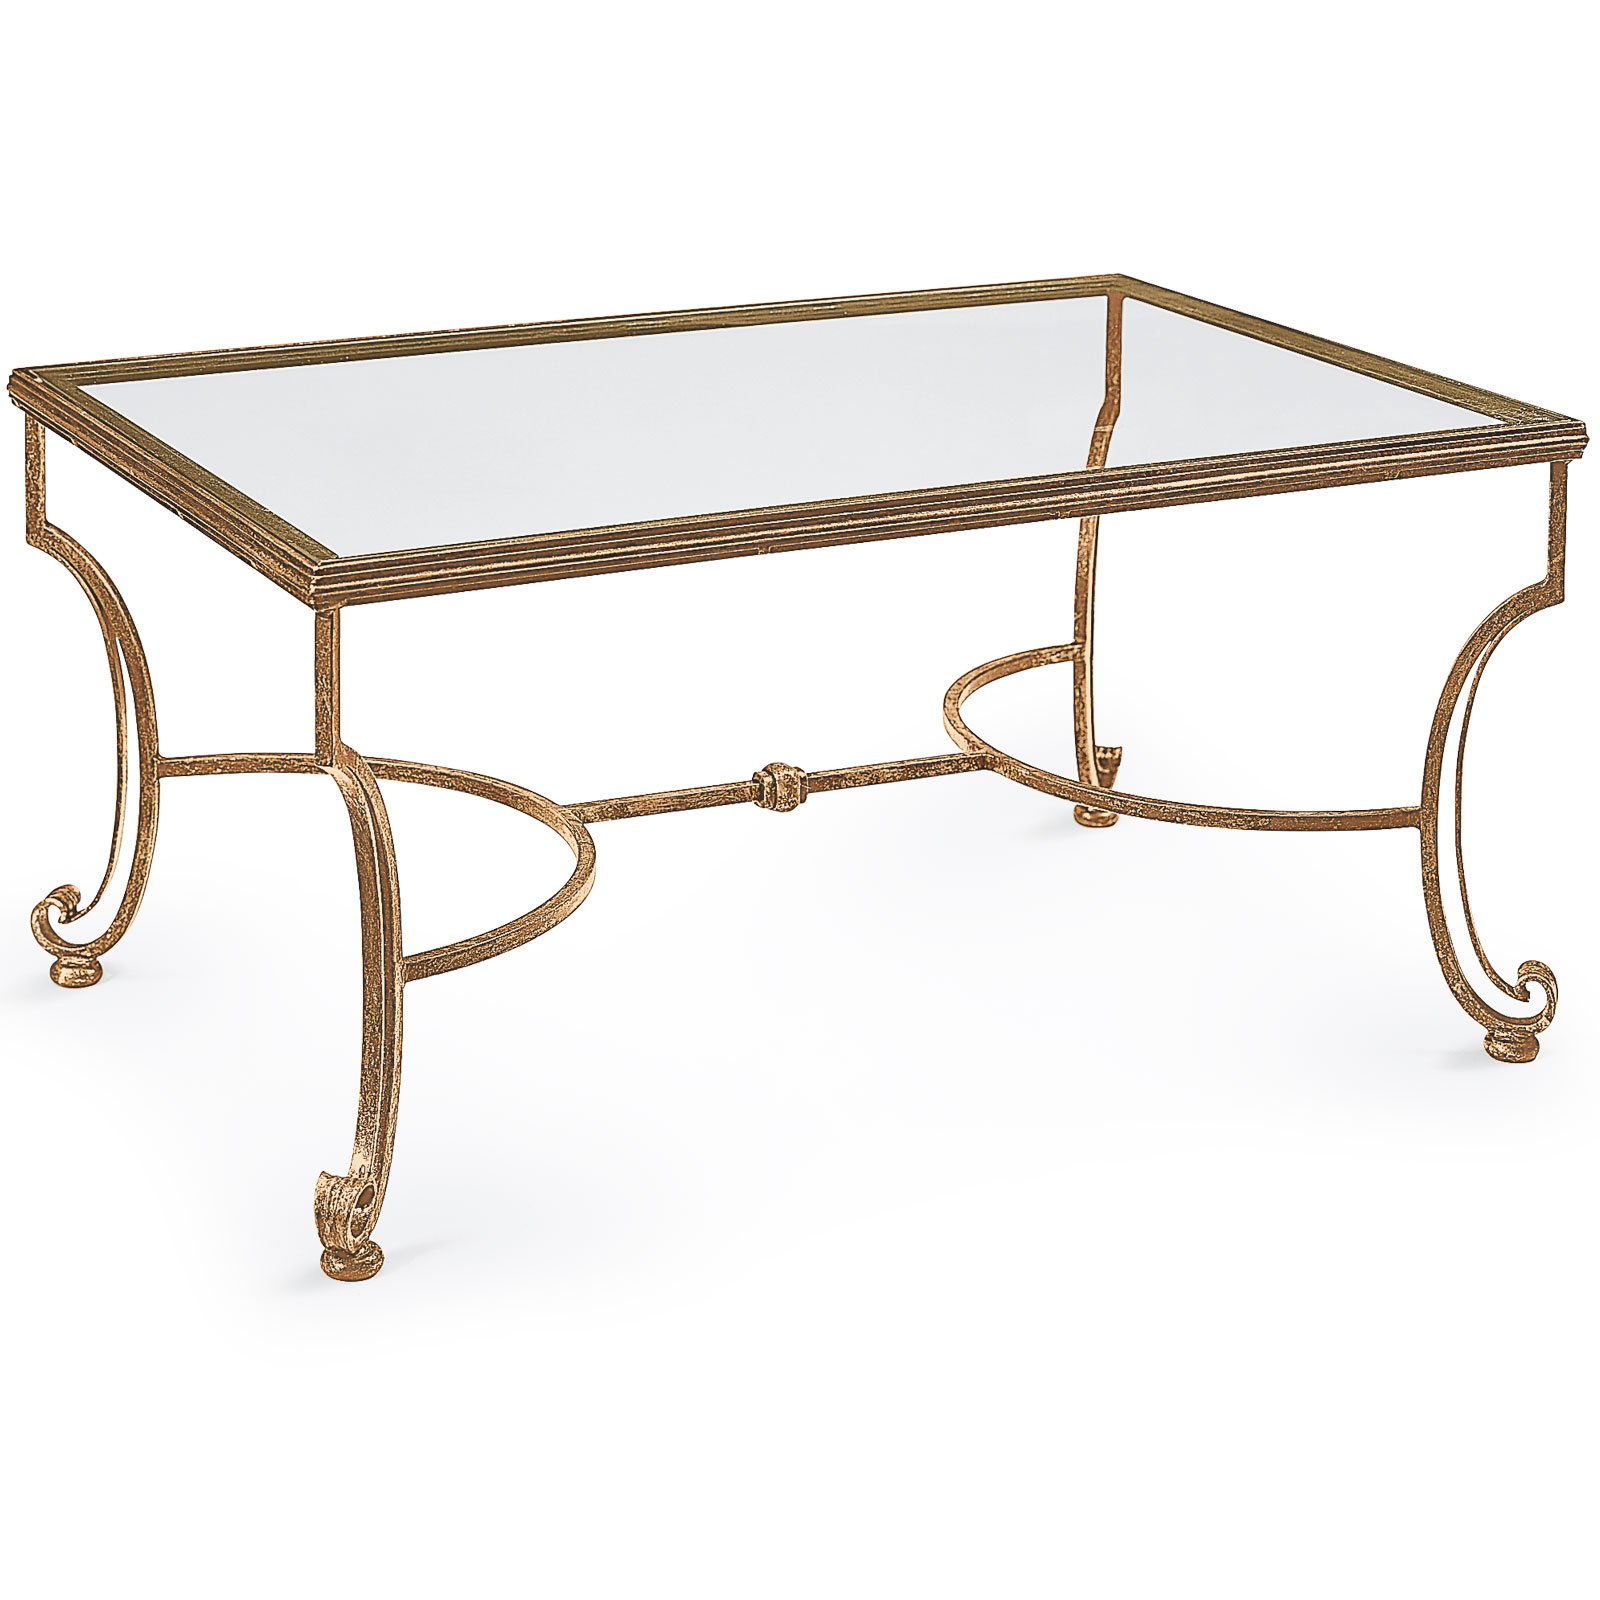 Wrought Iron Coffee Table Coffee Table In Distressed Antiqued Gold Leaf